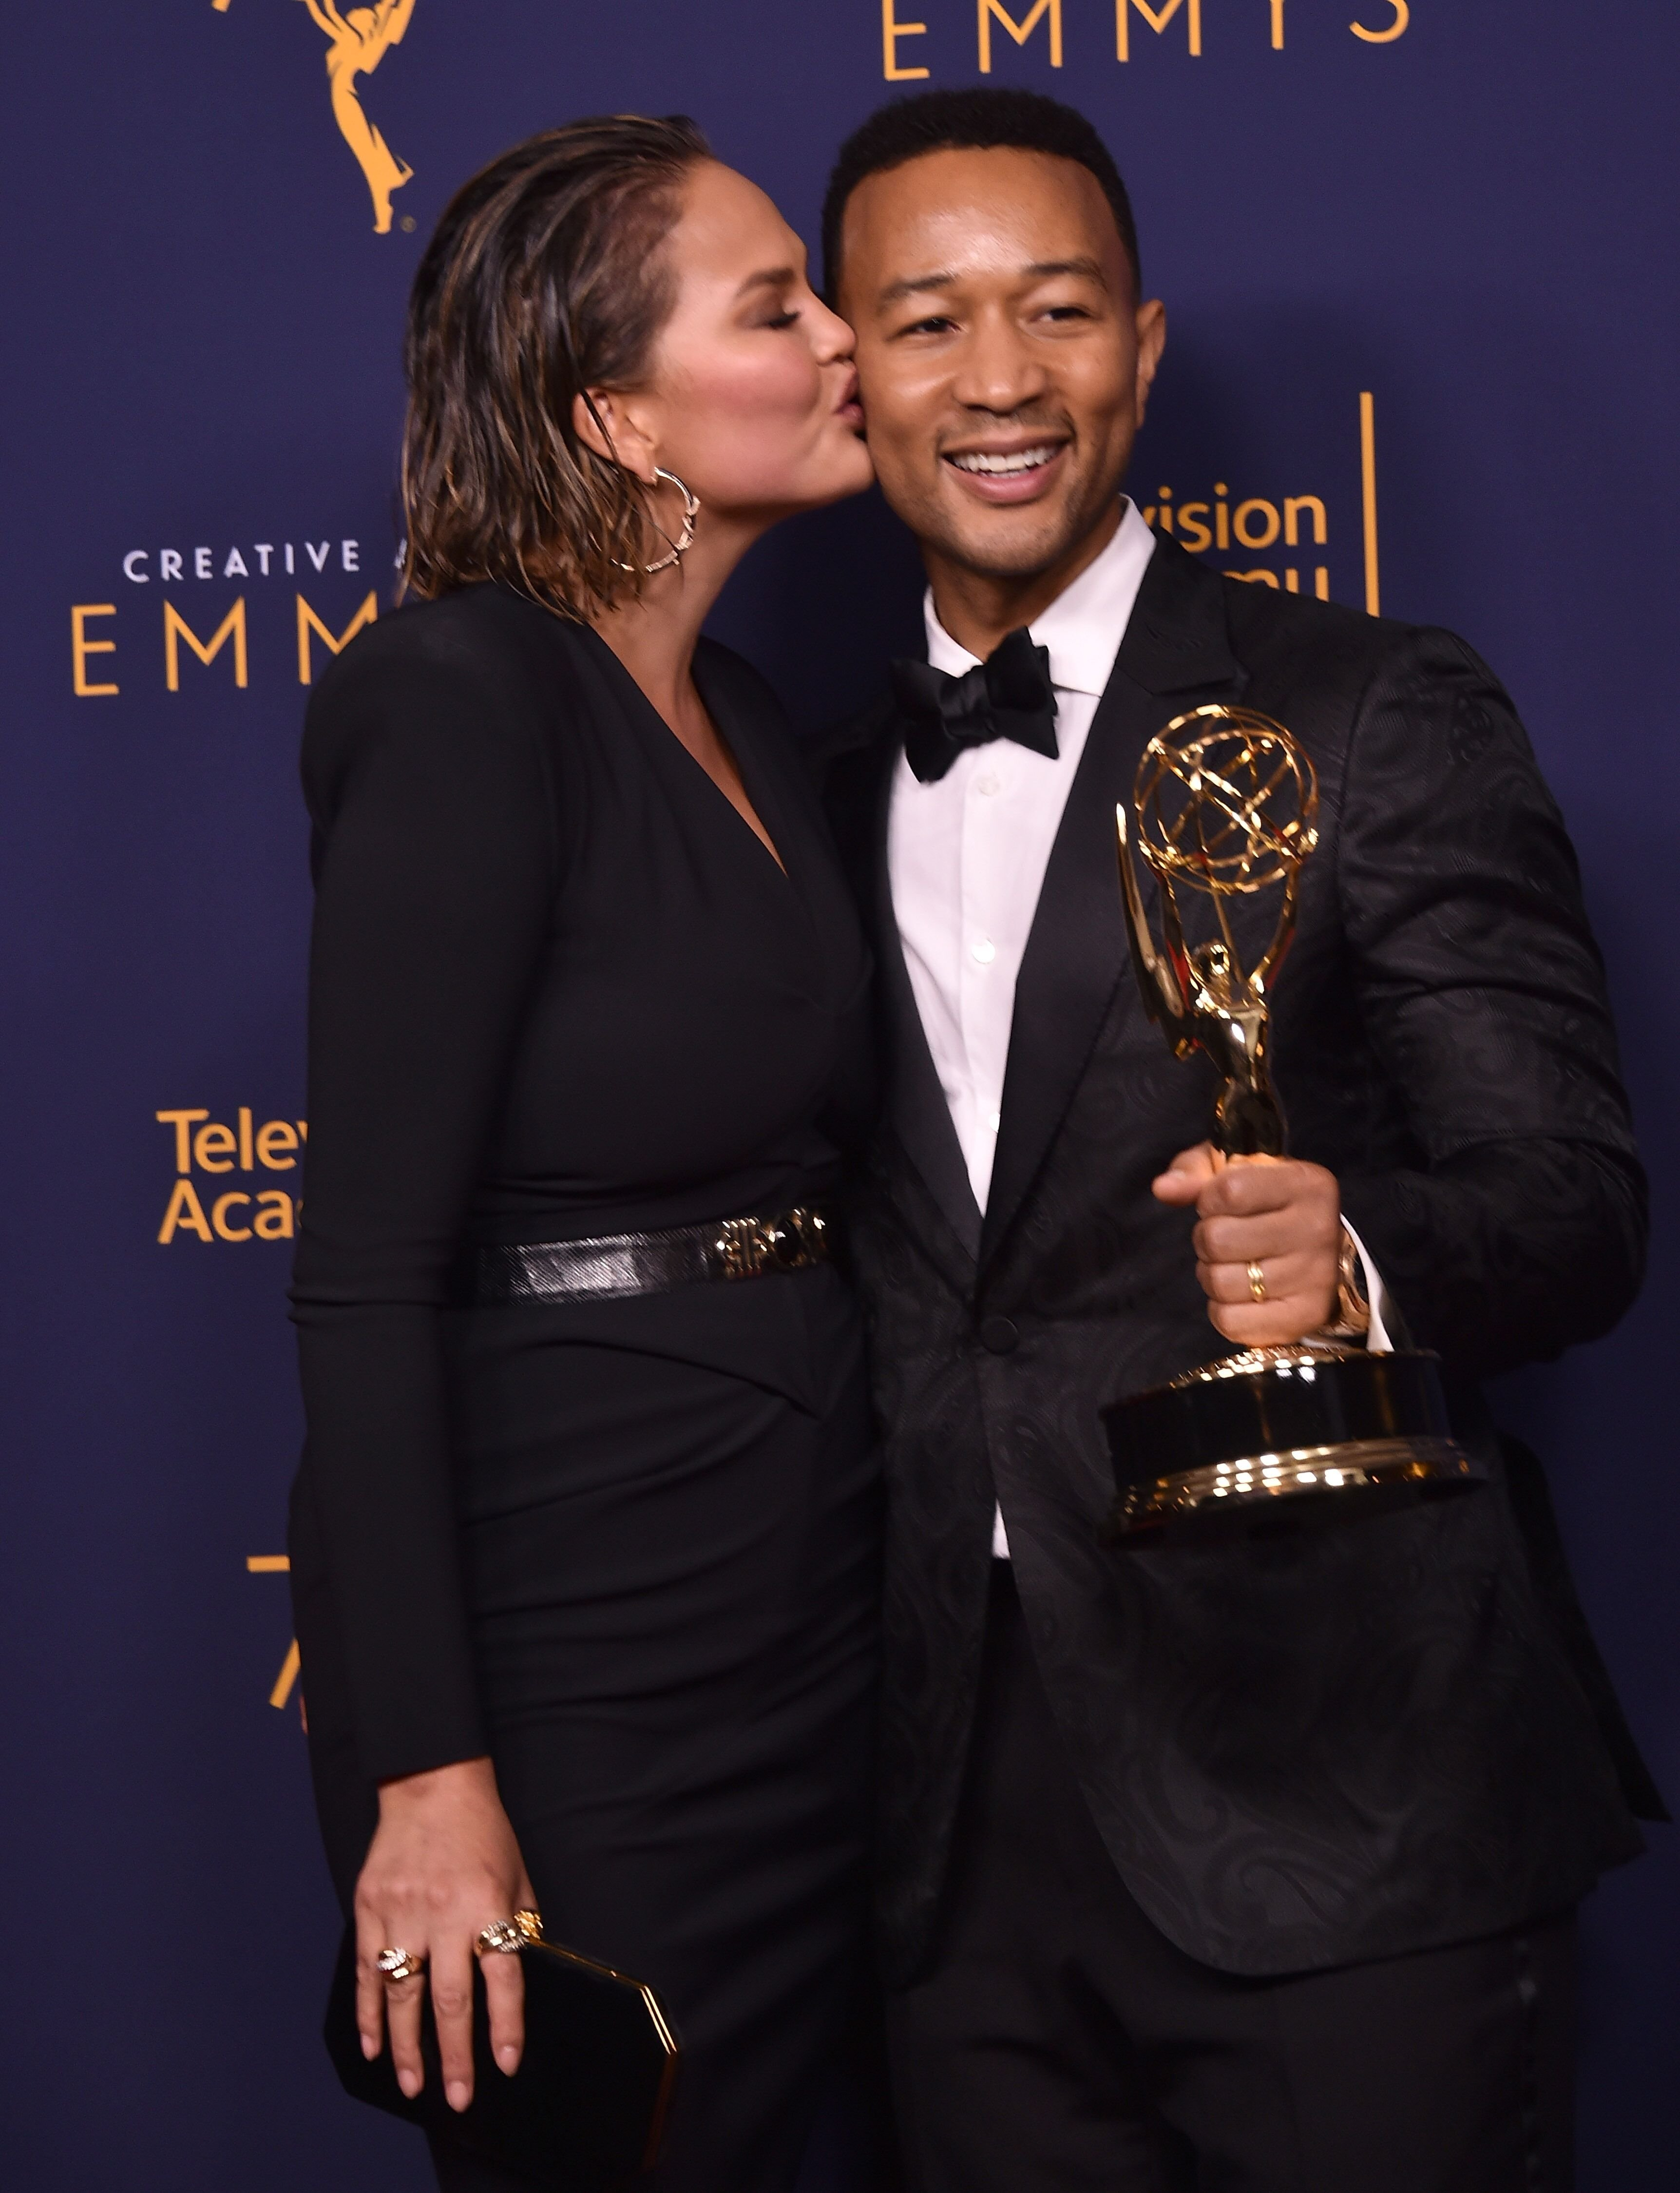 John Legend and Chrissy Teigen at the Emmys/ Source: Getty Images